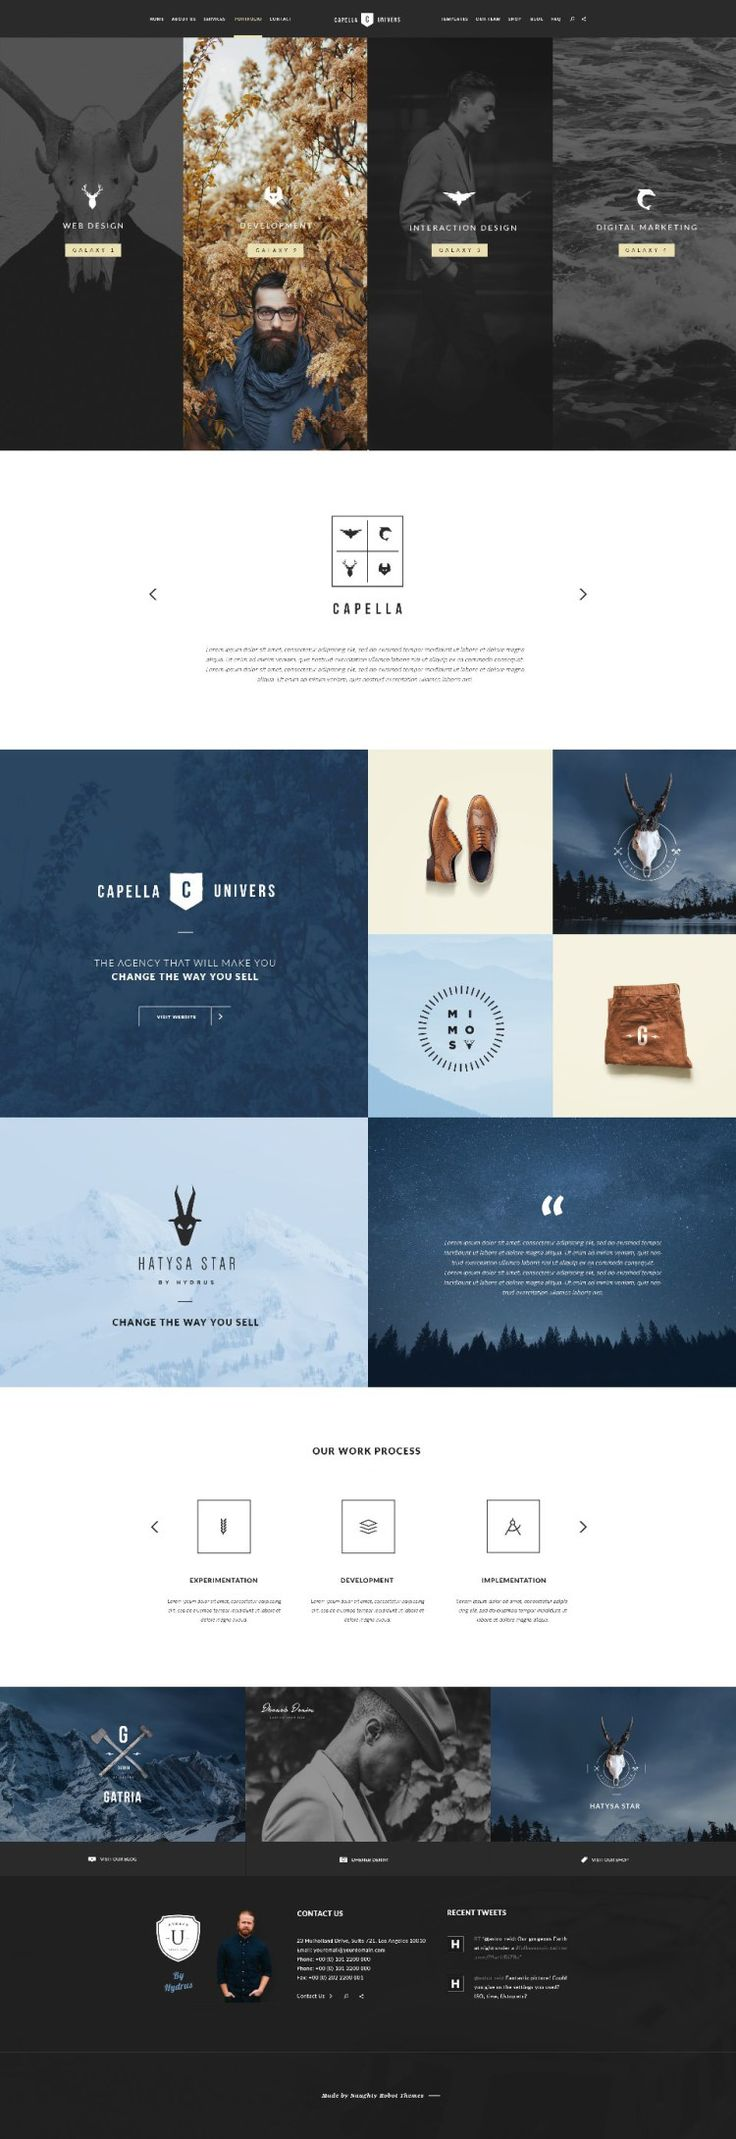 Hydrus Web Design Inspiration by naughtyrobot part 2